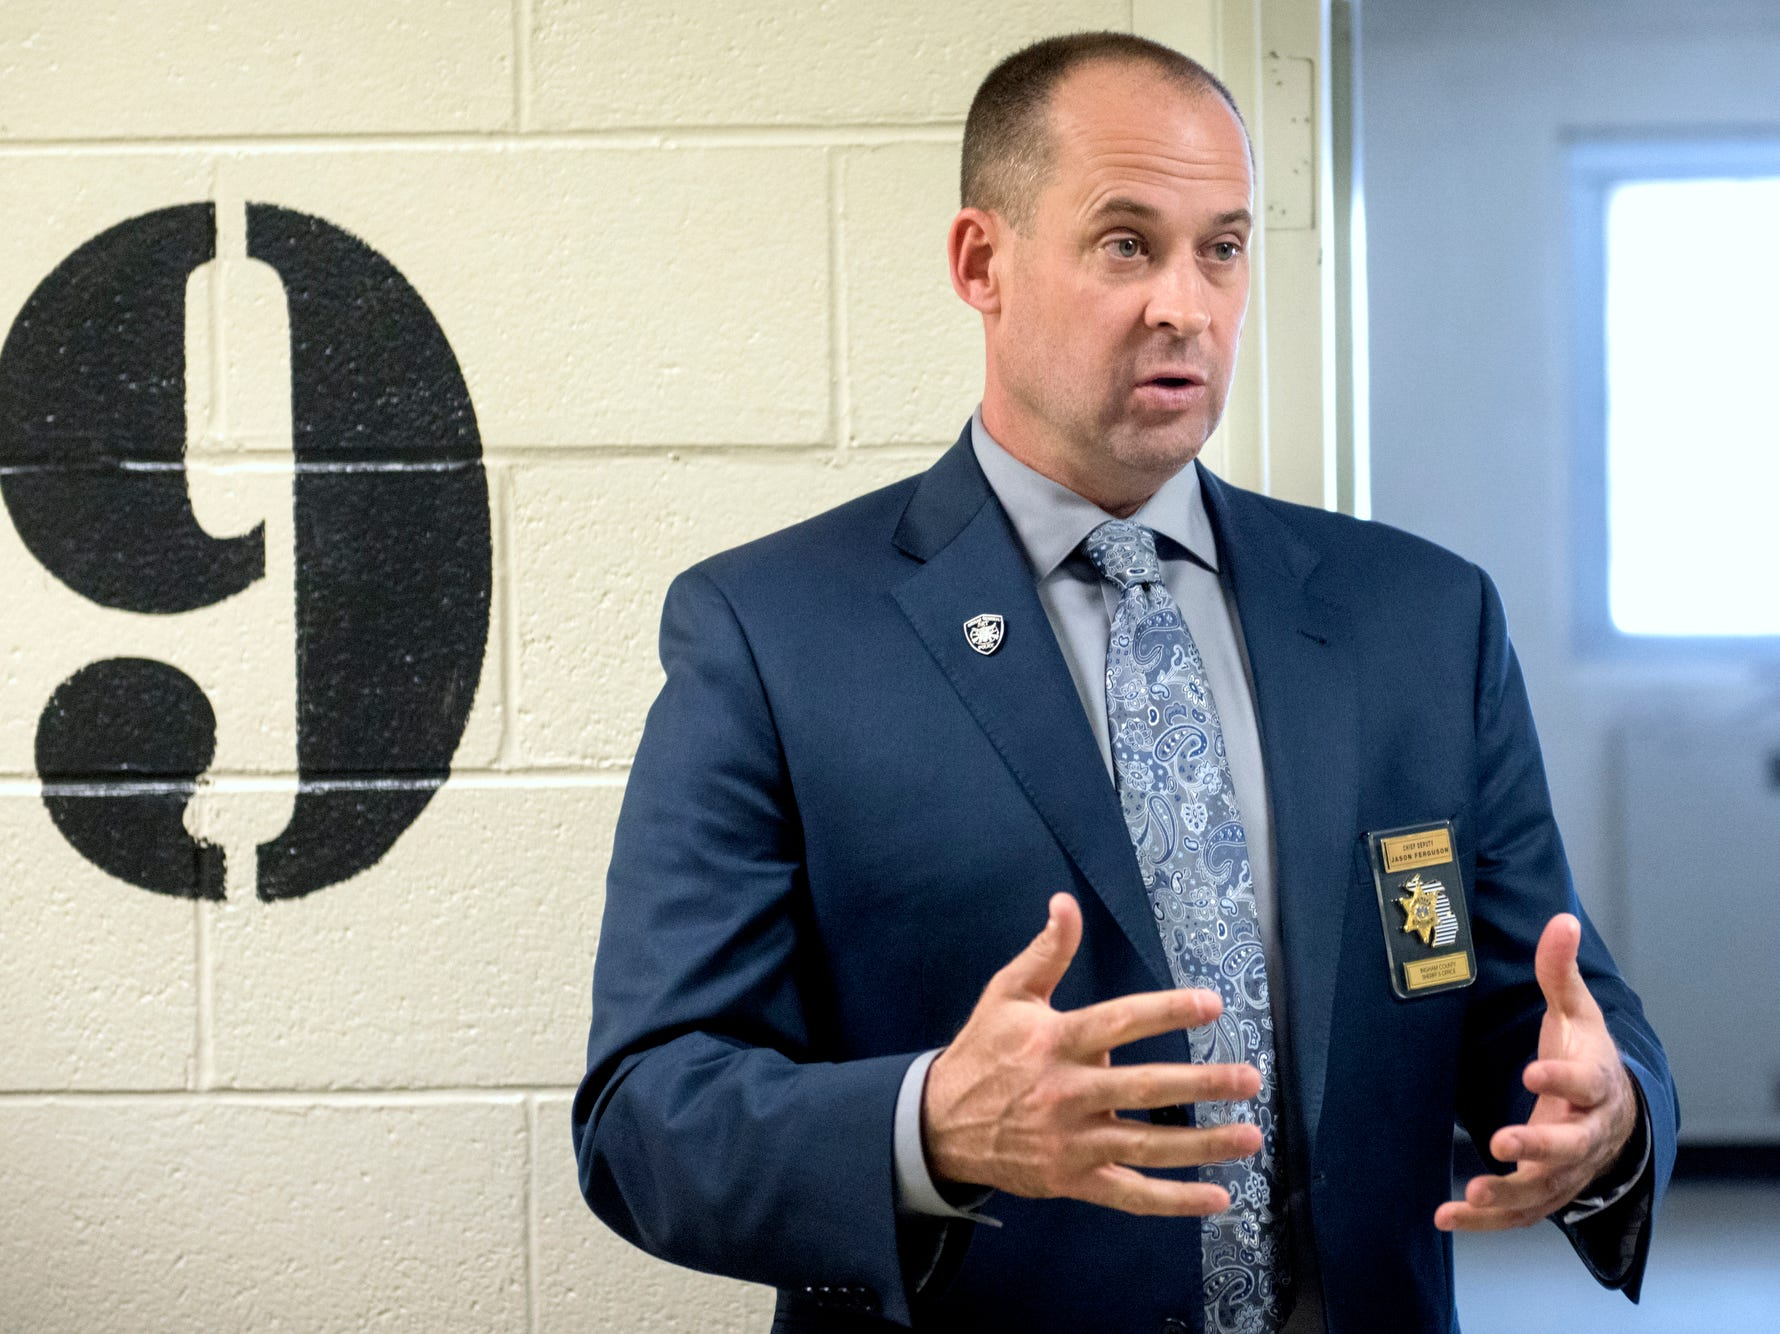 Ingham County Sheriff Chief Deputy Jason Ferguson speaks about post nine at the Ingham County Jail on Tuesday, April 24, 2018, in Mason. Post nine is the only area in the jail where female inmates are housed.